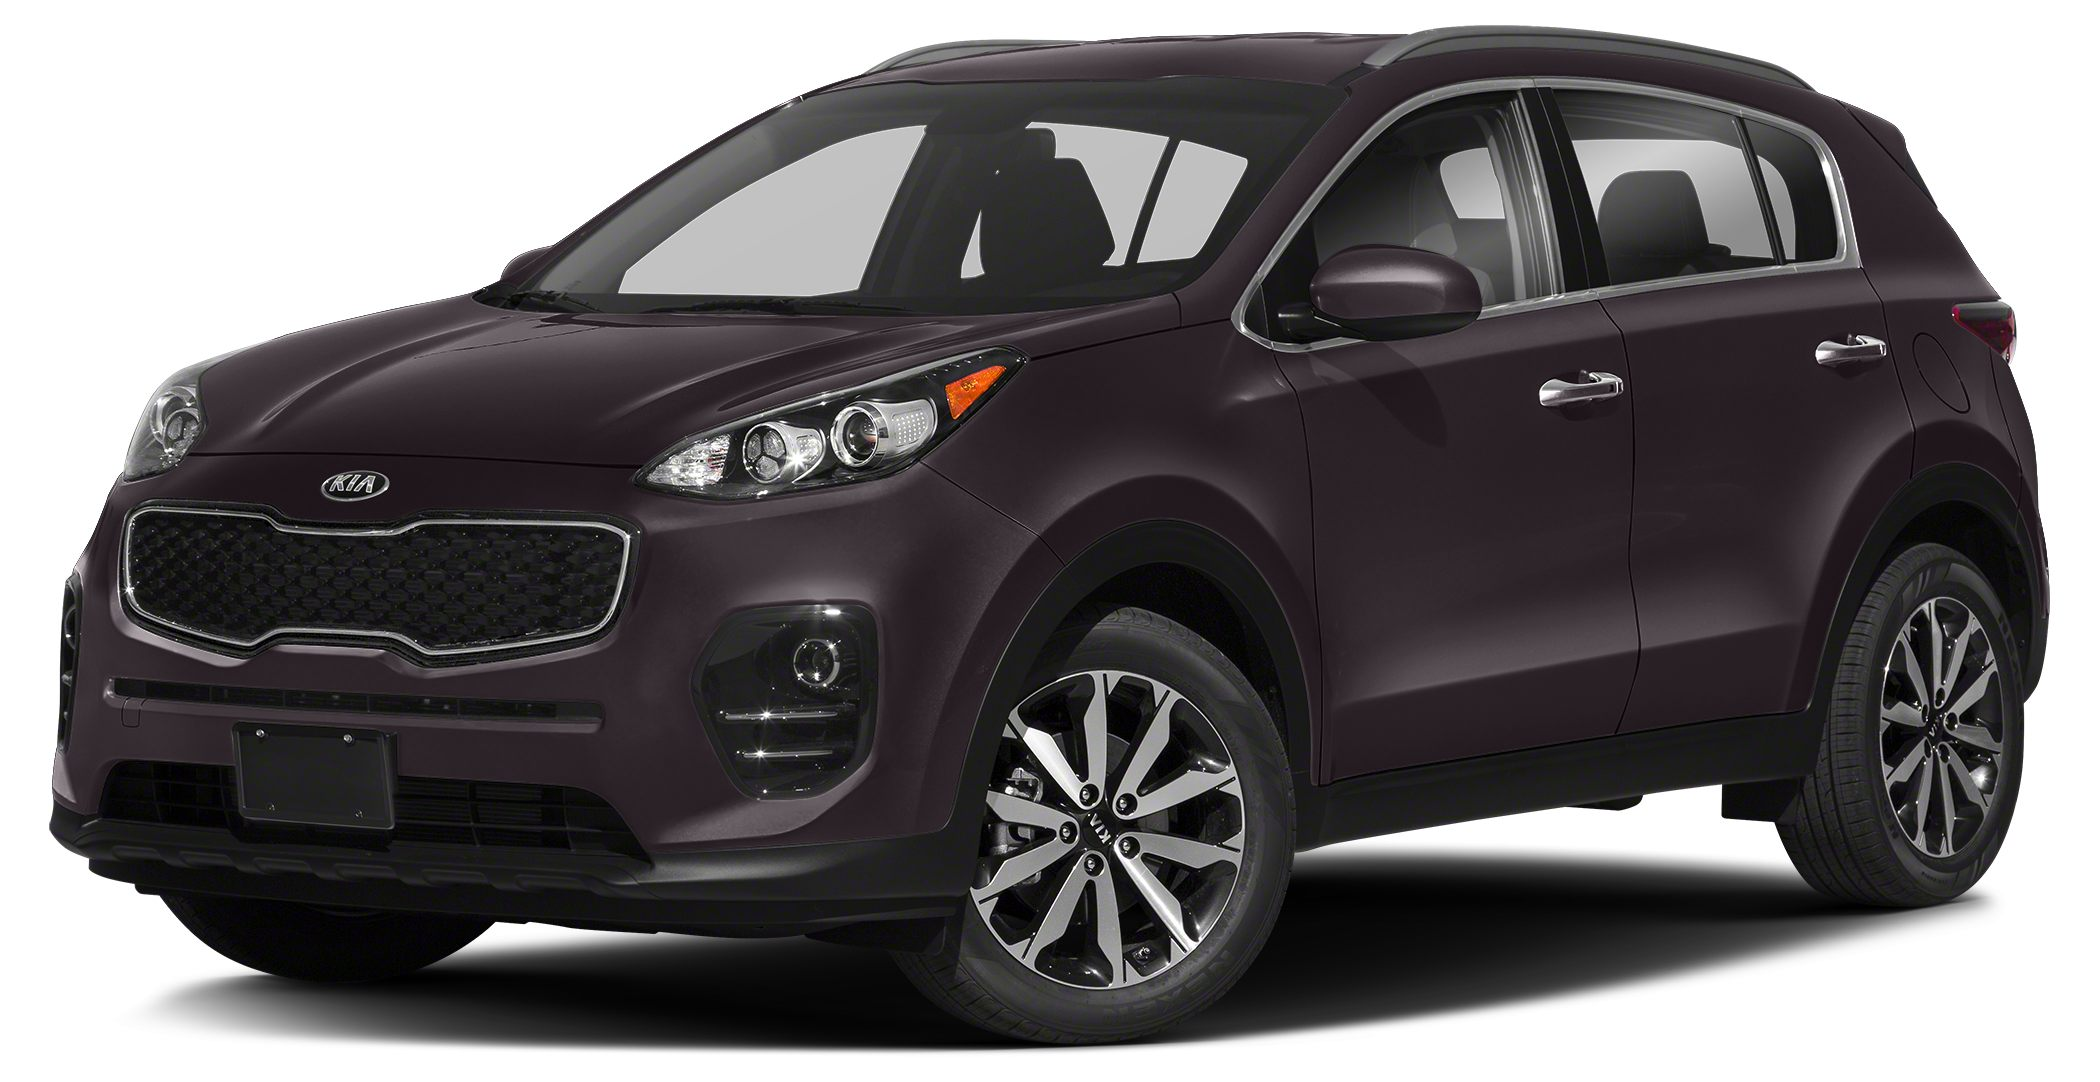 2017 Kia Sportage EX There are SUVs and then there are SUVs like this wonderful SUV Stunning